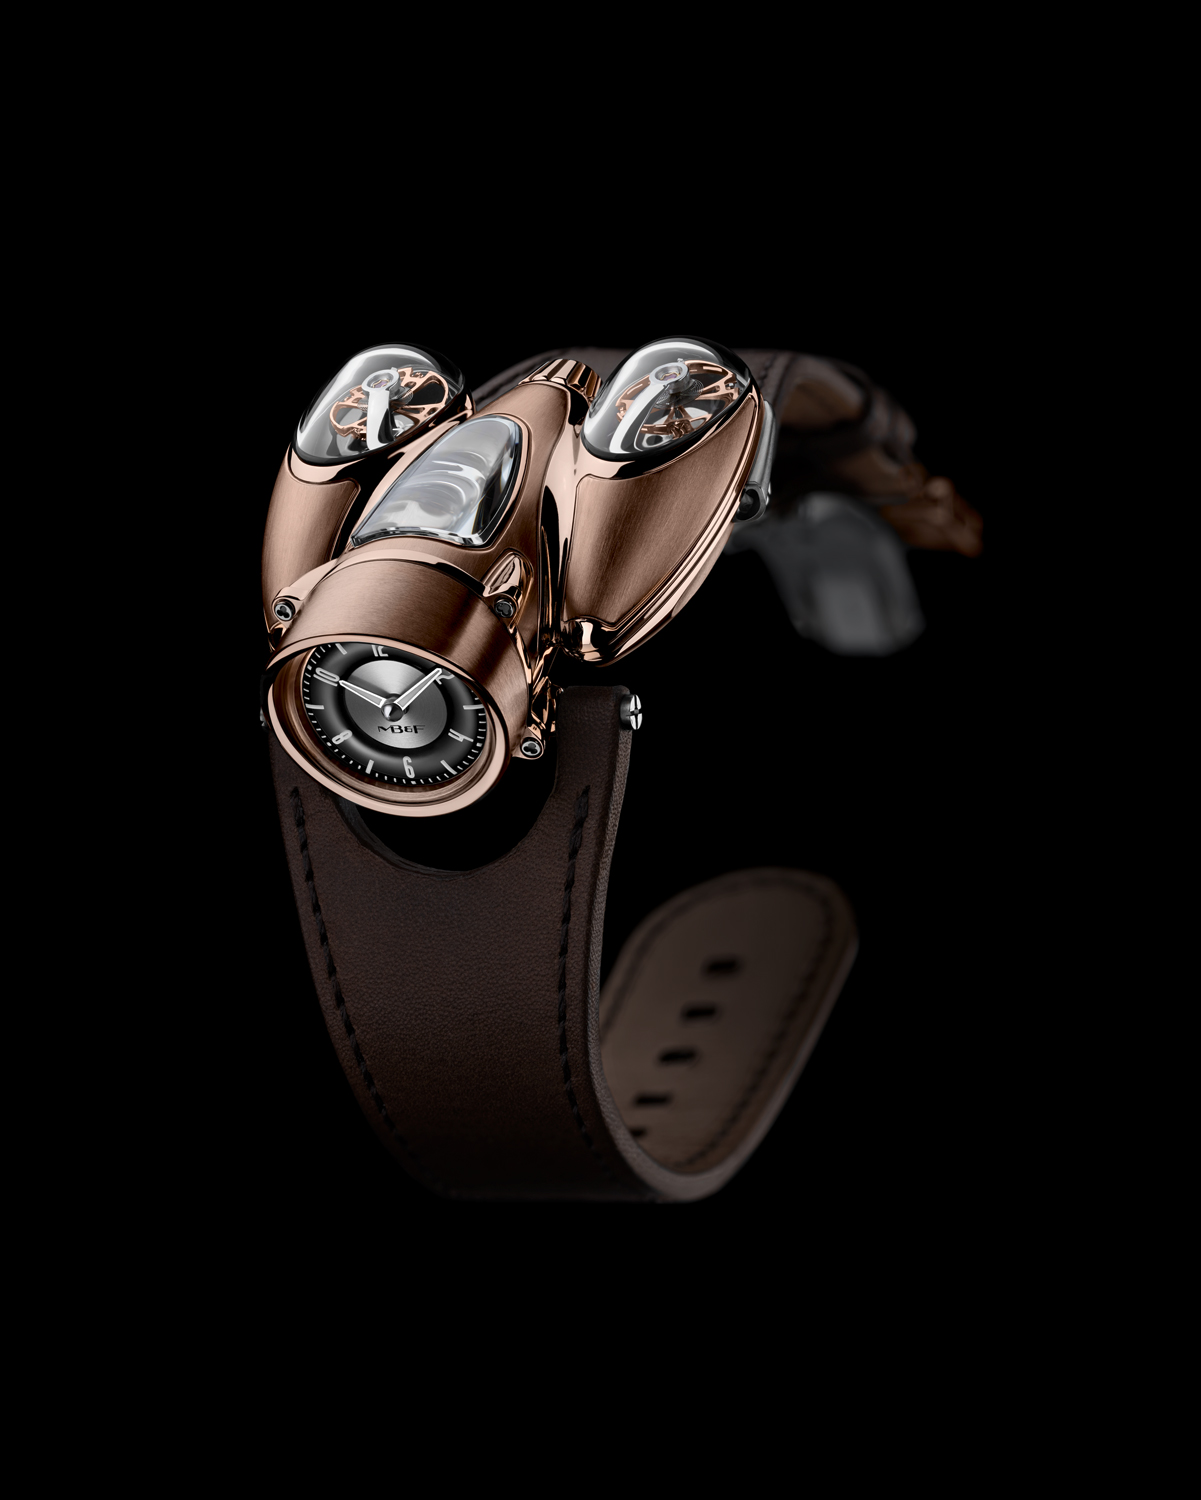 MB&F HM9 'Flow' Road red gold